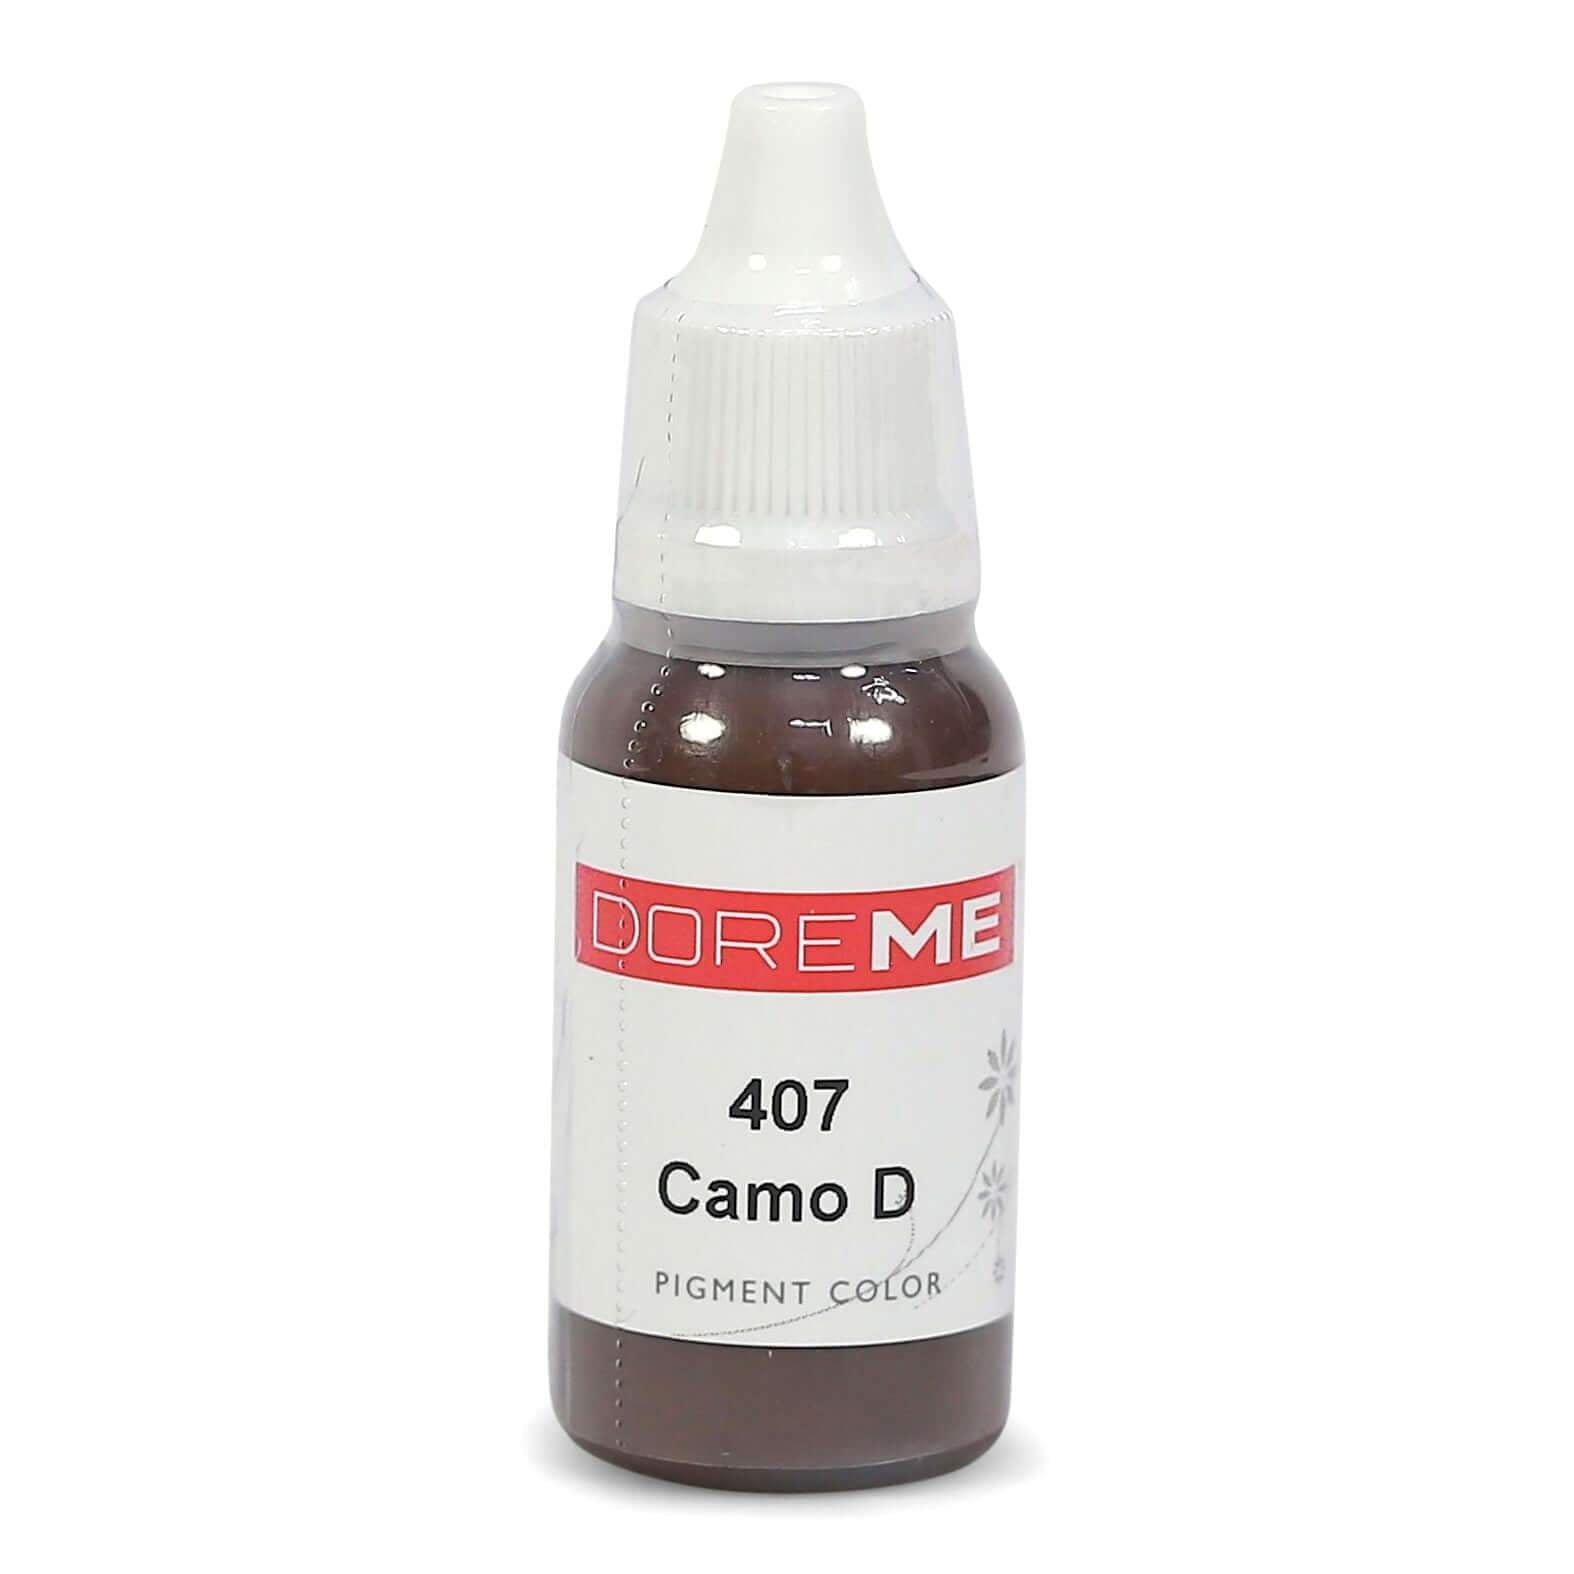 Doreme Skin Camouflage Pigments 407 Camo D (c) - Beautiful Ink UK trade and wholesale supplier